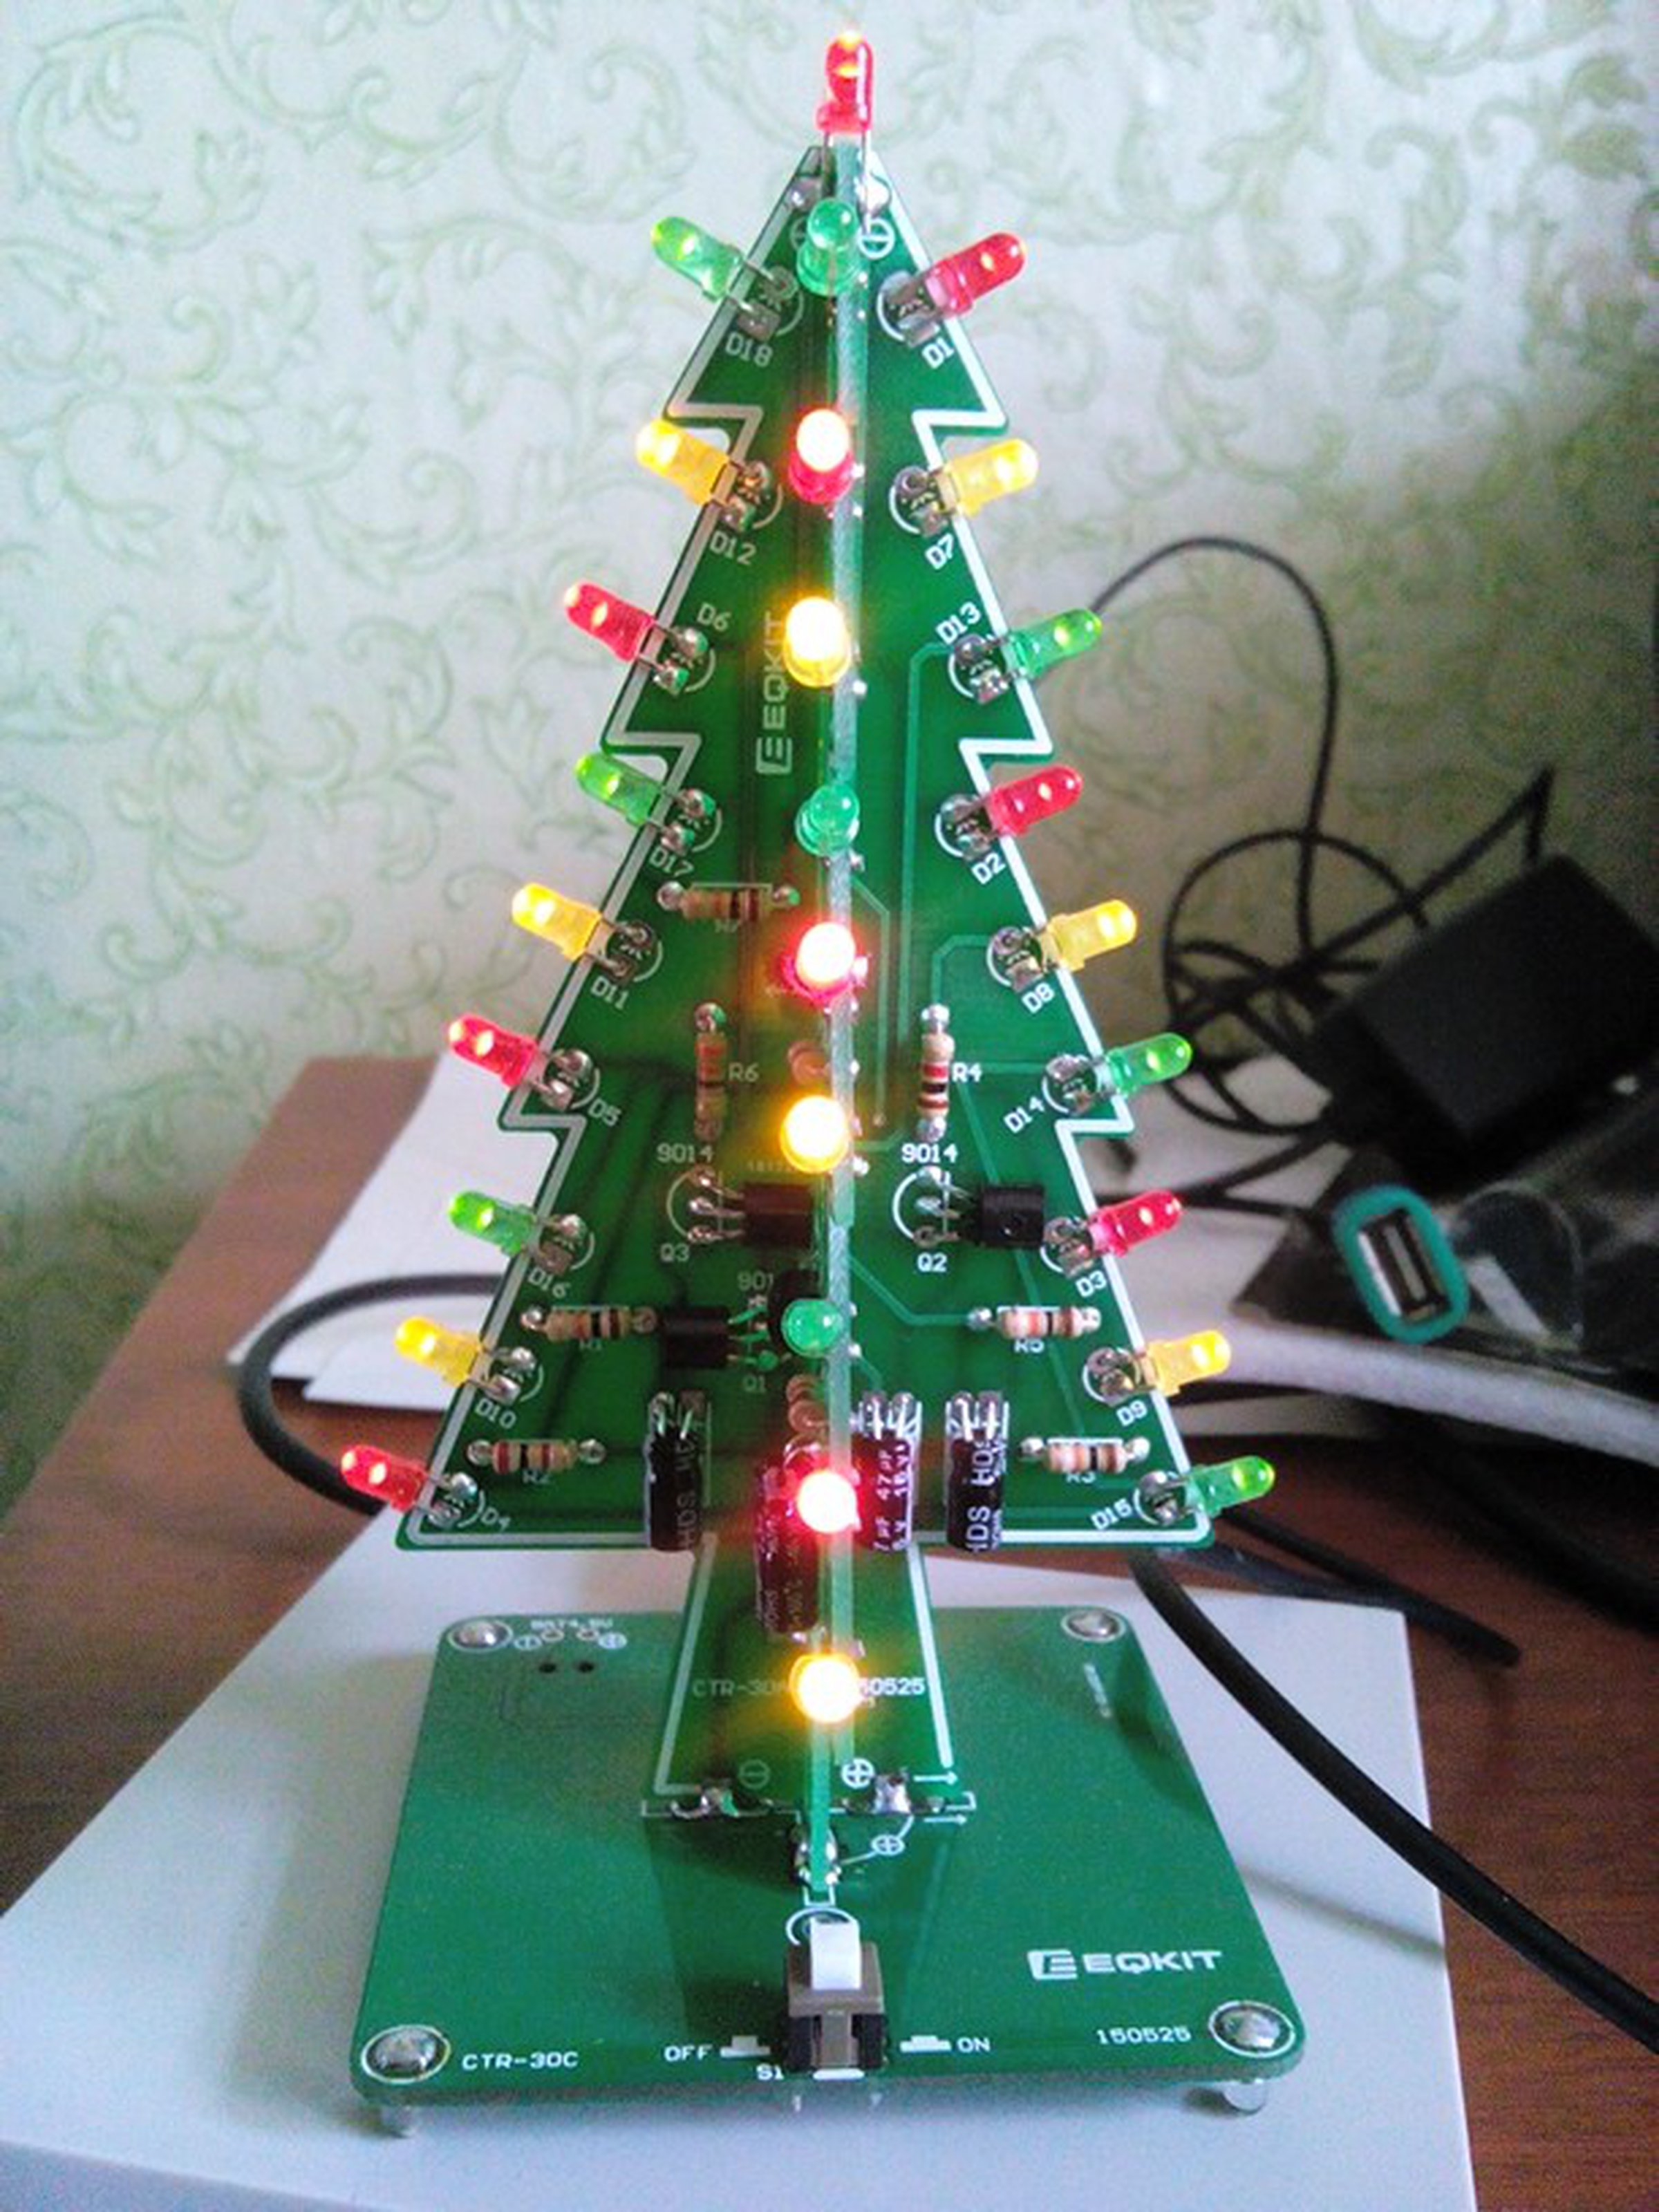 Diy Flashing Led Christmas Tree Circuit Kit7212 From Icstation On Wire Lights In Addition Wiring 2